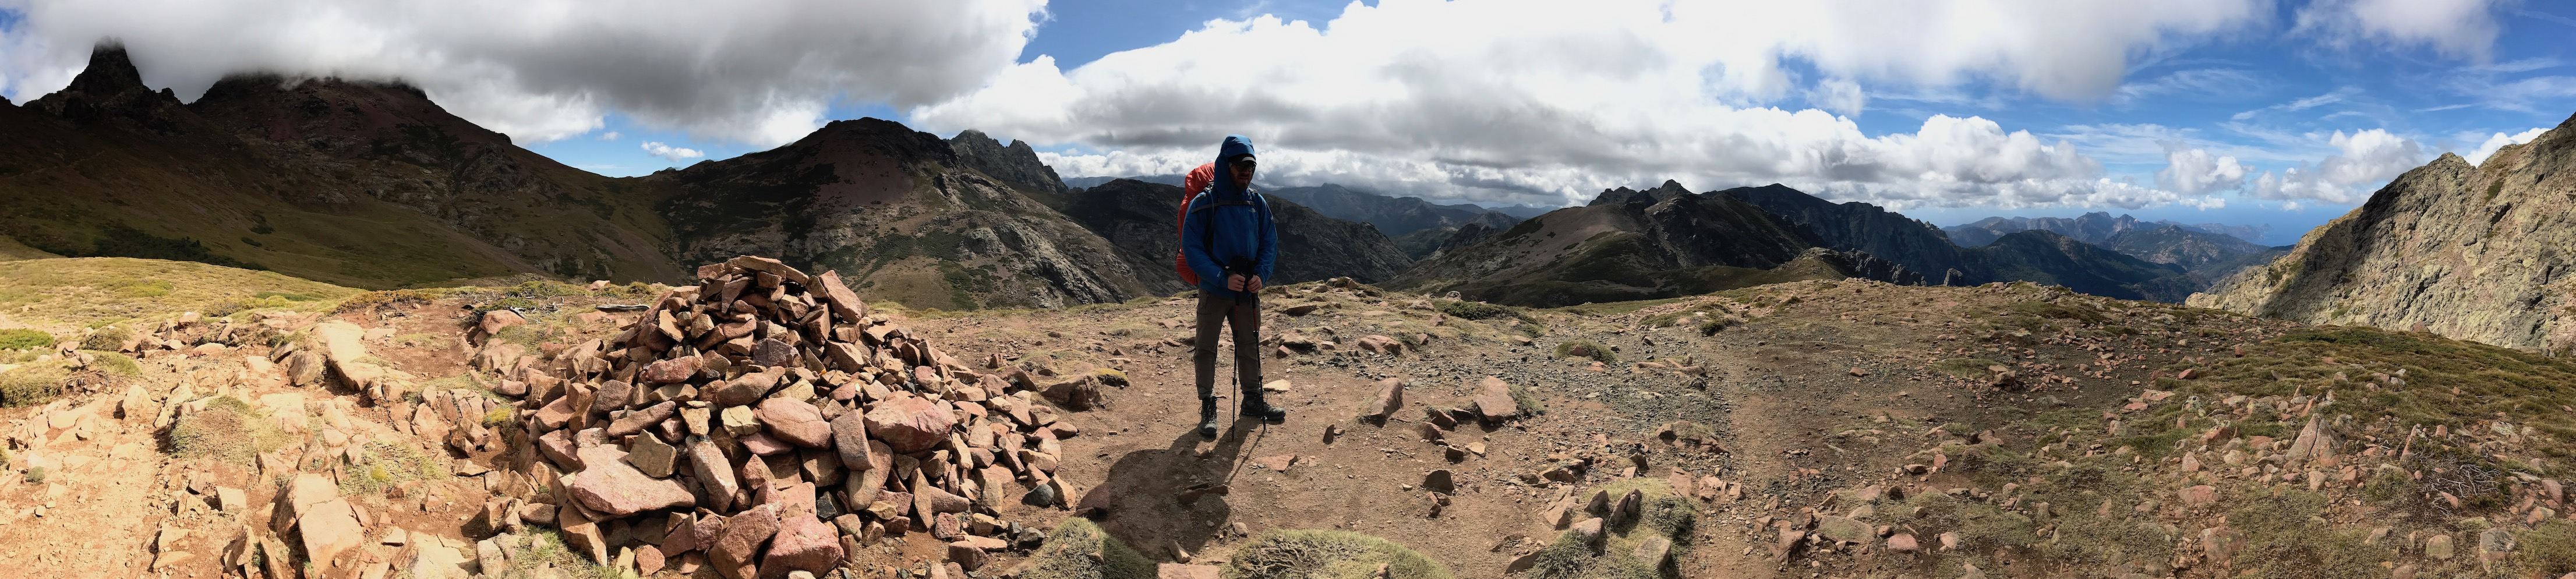 Trekking the GR20 on Corsica